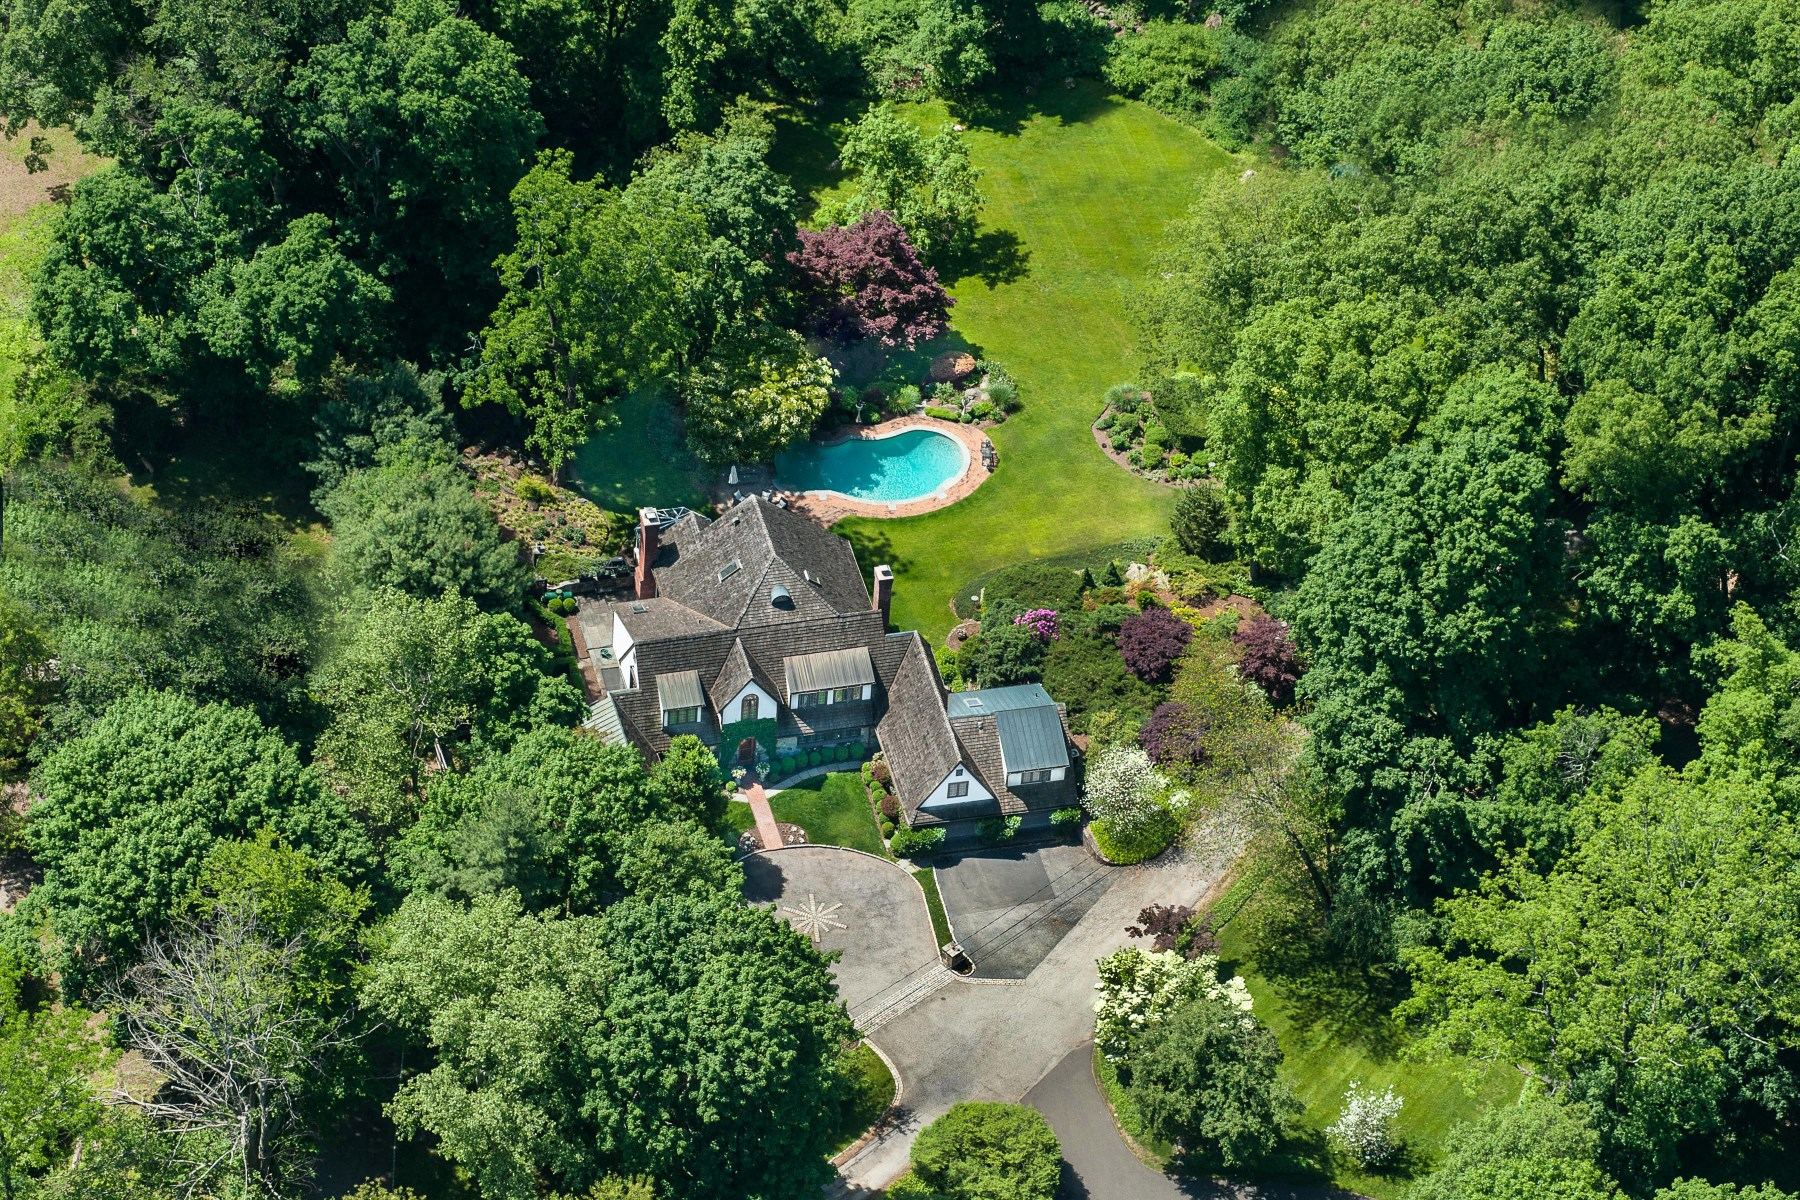 Single Family Home for Sale at 544 North Street, Greenwich CT Mid-Country, Greenwich, Connecticut, 06830 United States